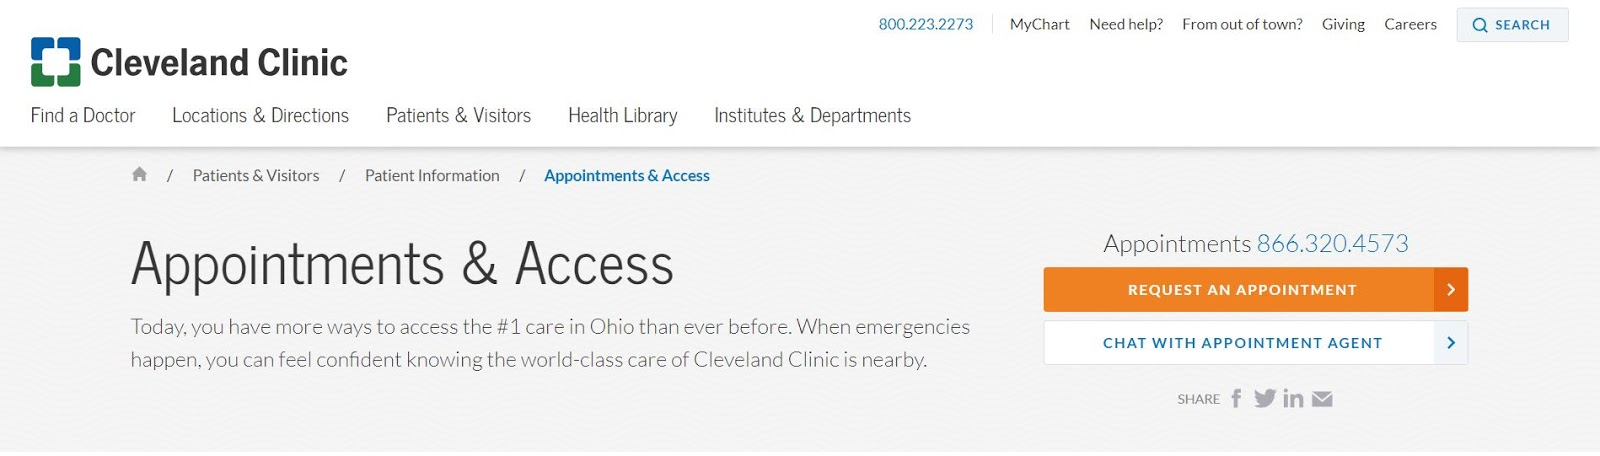 Cleveland Clinic online appointment request